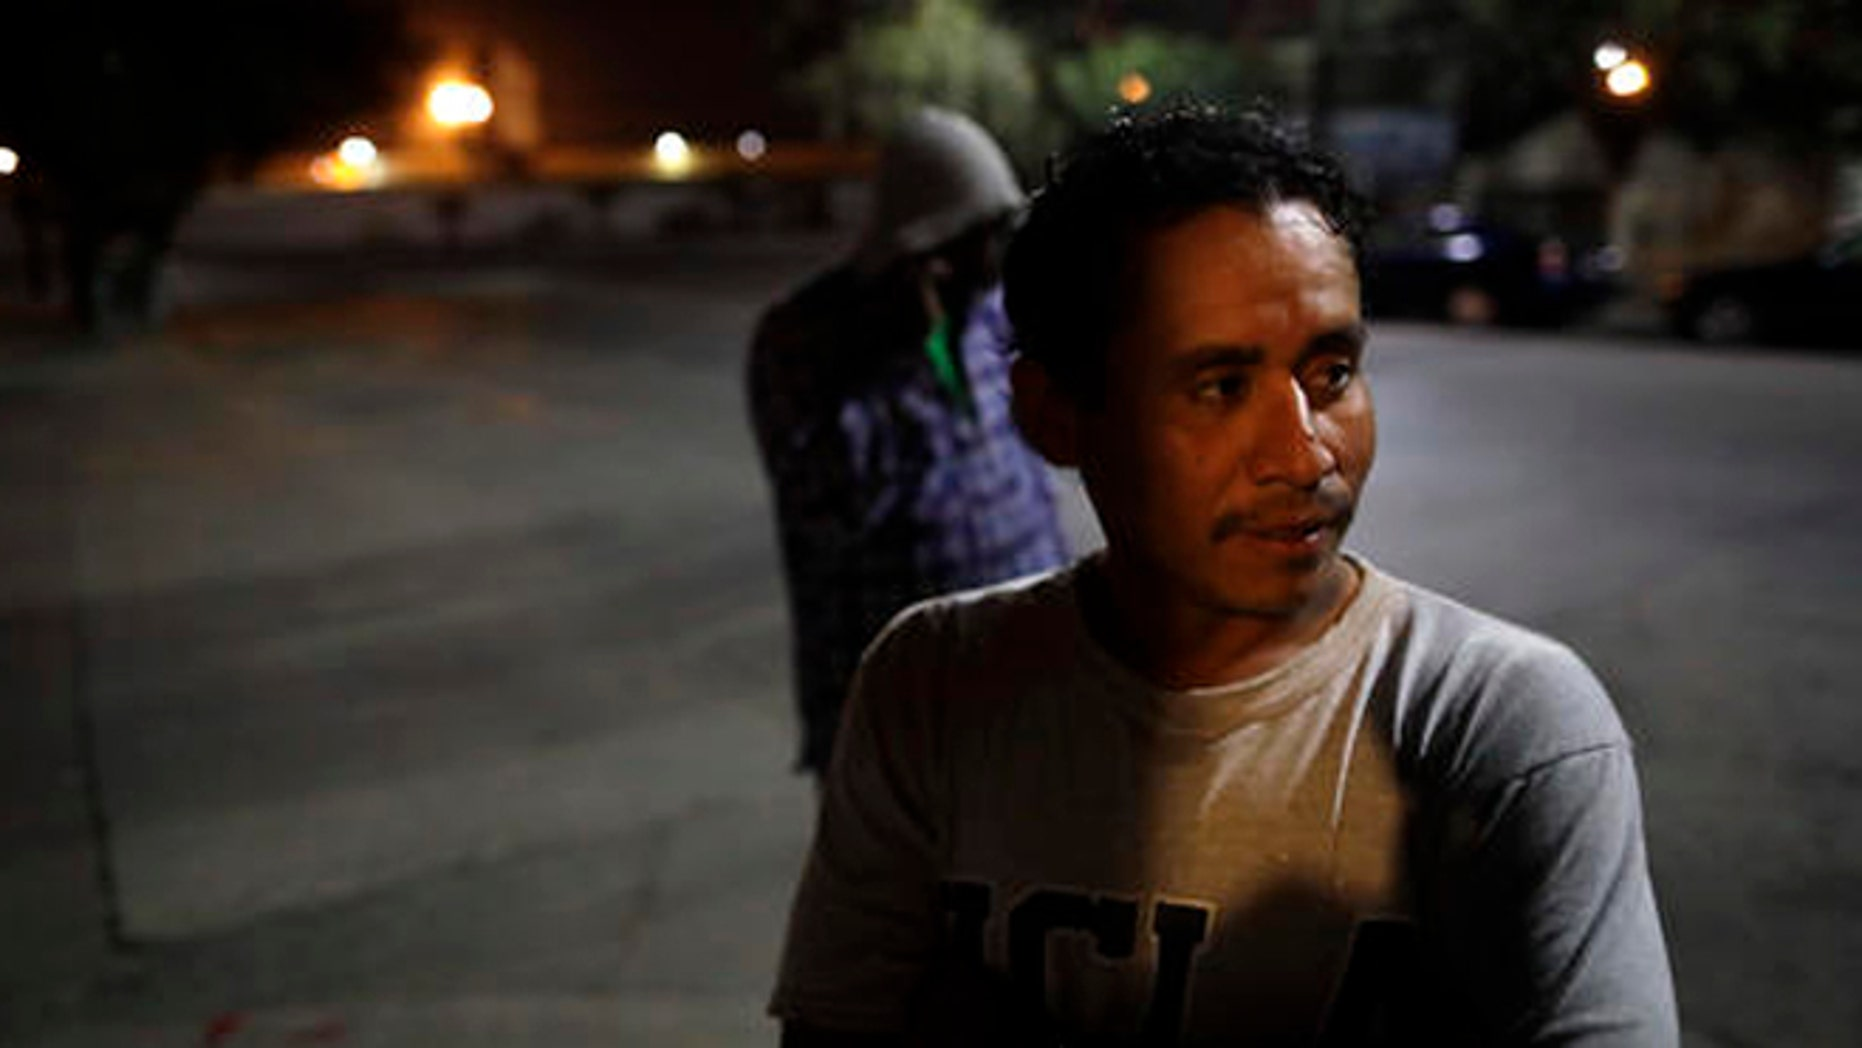 "Guatamalan Elvin Vazquez looks on from a street in front of a shelter for migrants after being deported Monday, Nov. 14, 2016, in Tijuana, Mexico. Vazquez spent more than 13 years in the United States before being deported. In an interview with CBS' ""60 Minutes"" broadcast Sunday night, President-elect Donald Trump said he would focus on deporting people with criminal records beyond their immigration status. (AP Photo/Gregory Bull)"